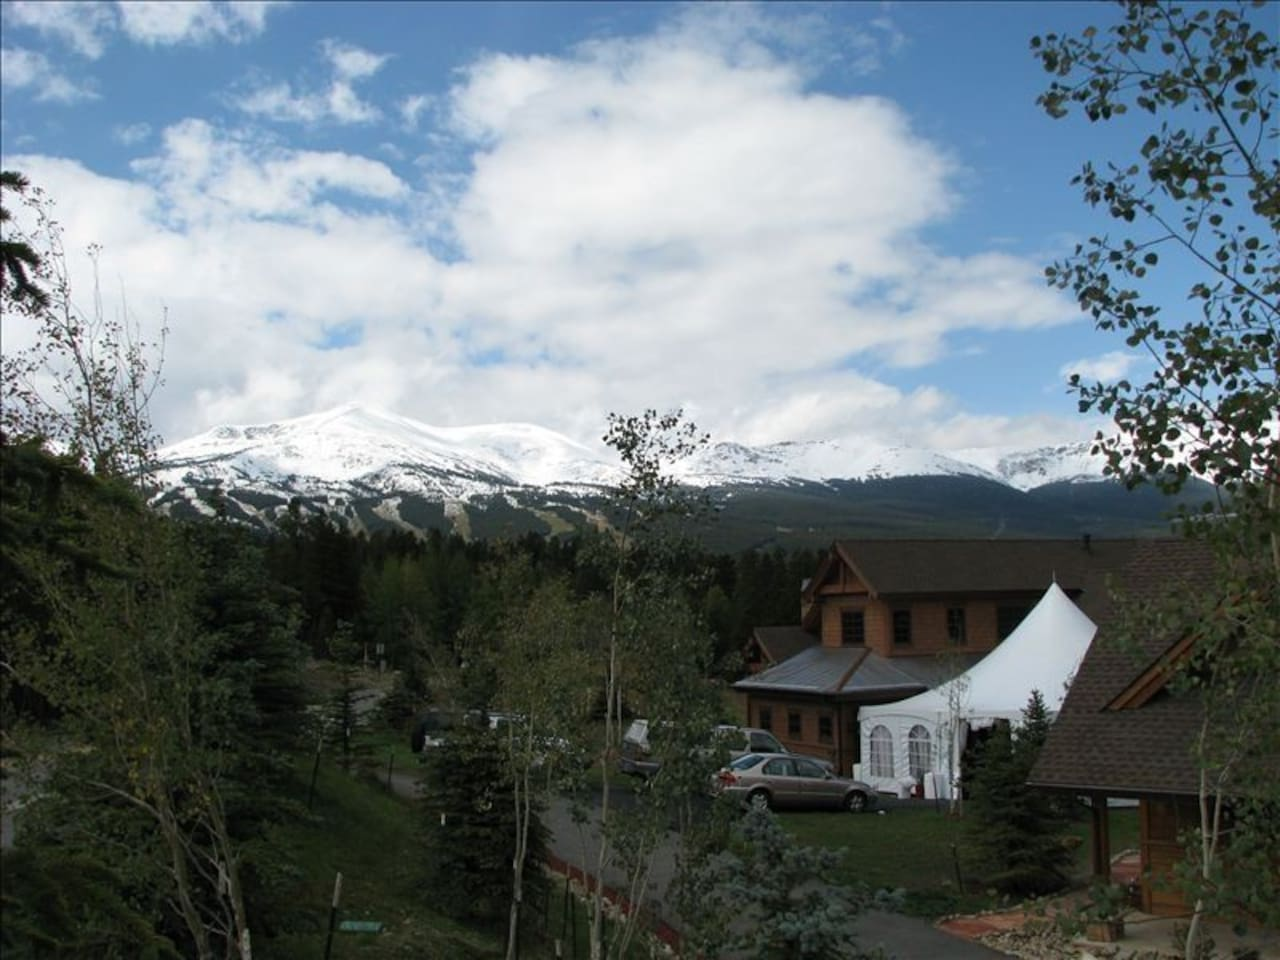 View of Breckenridge Ski Resort from the property.  The apartment is located only 6 blocks to Main Street Breckenridge.  Free shuttle can take you into town or up to the mountain.